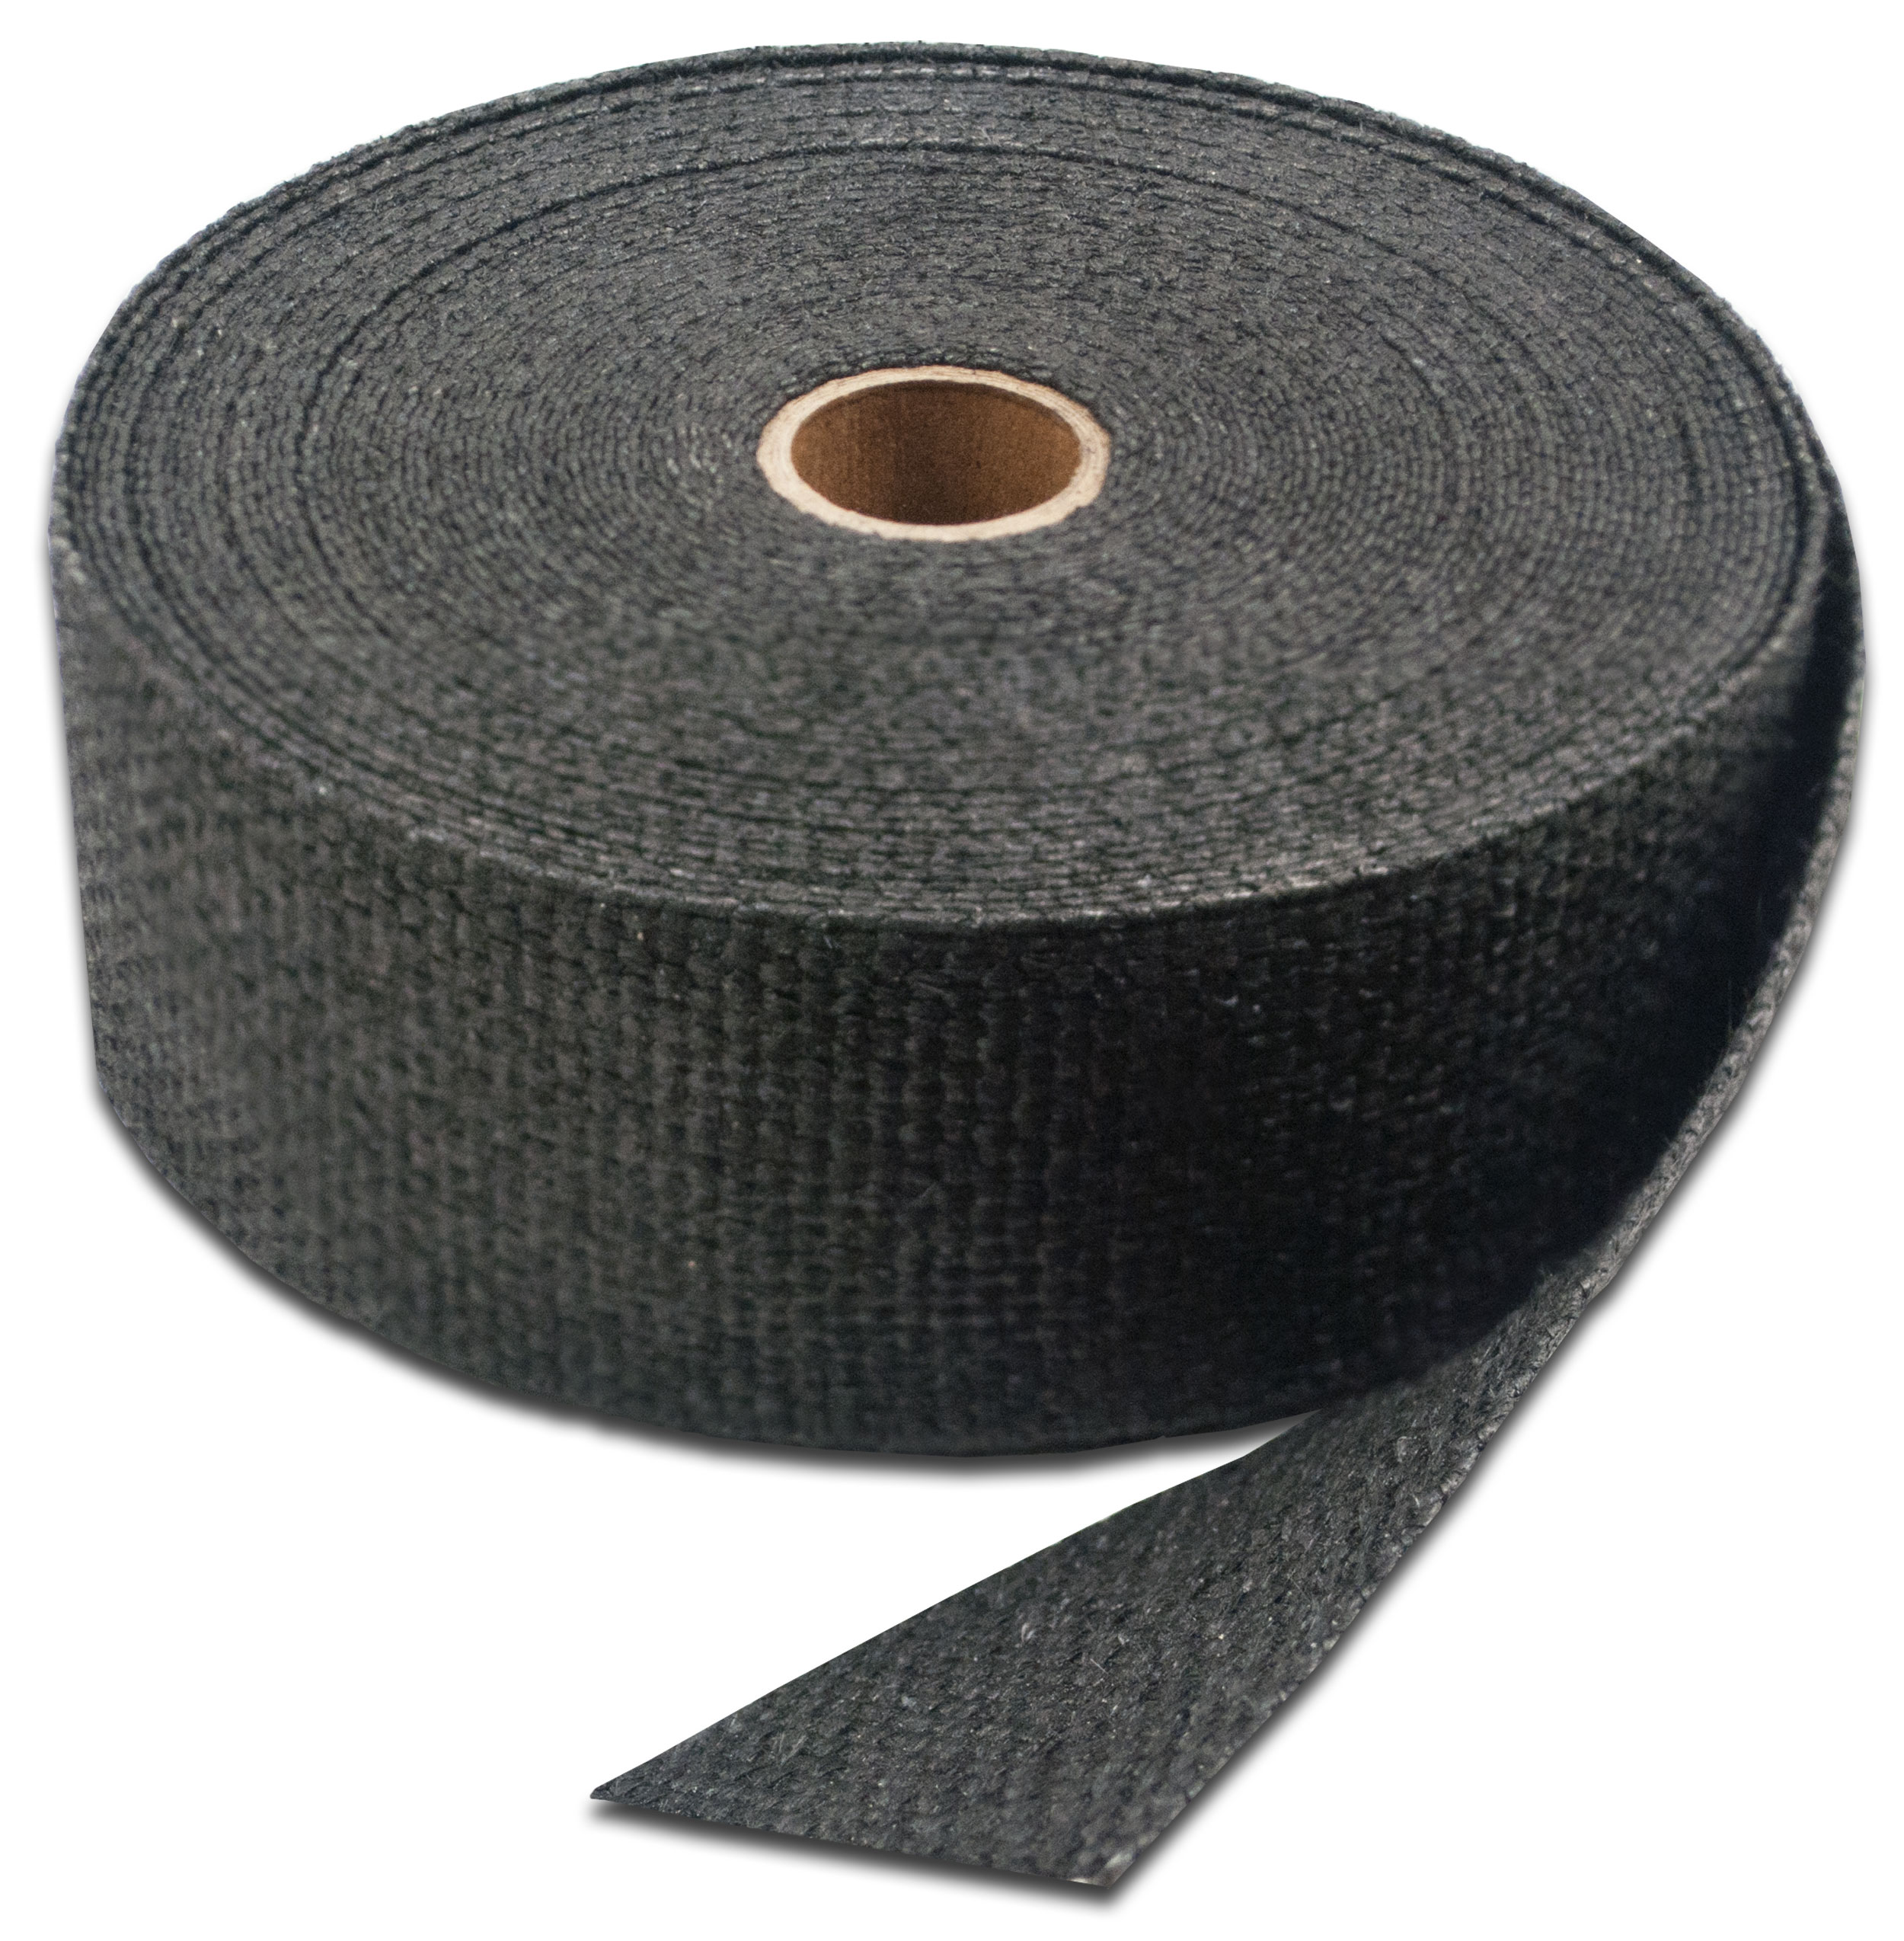 11153 Thermo-Tec Exhaust System Wrap 15 Foot Roll